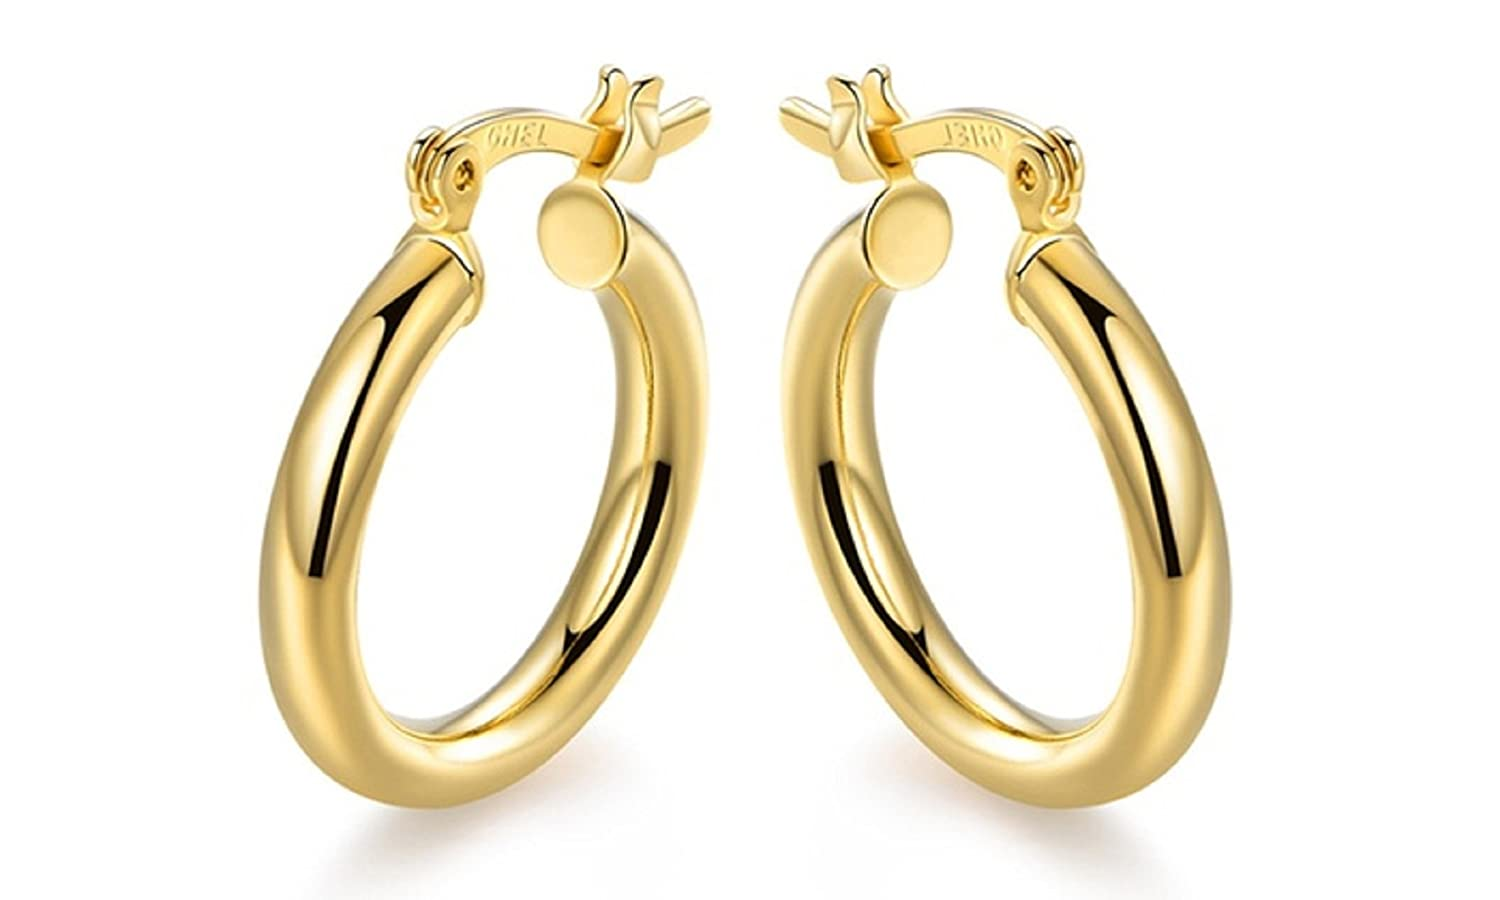 10K Solid Gold Round Hoop Earrings -3 MM Thickness - French Lock Closure